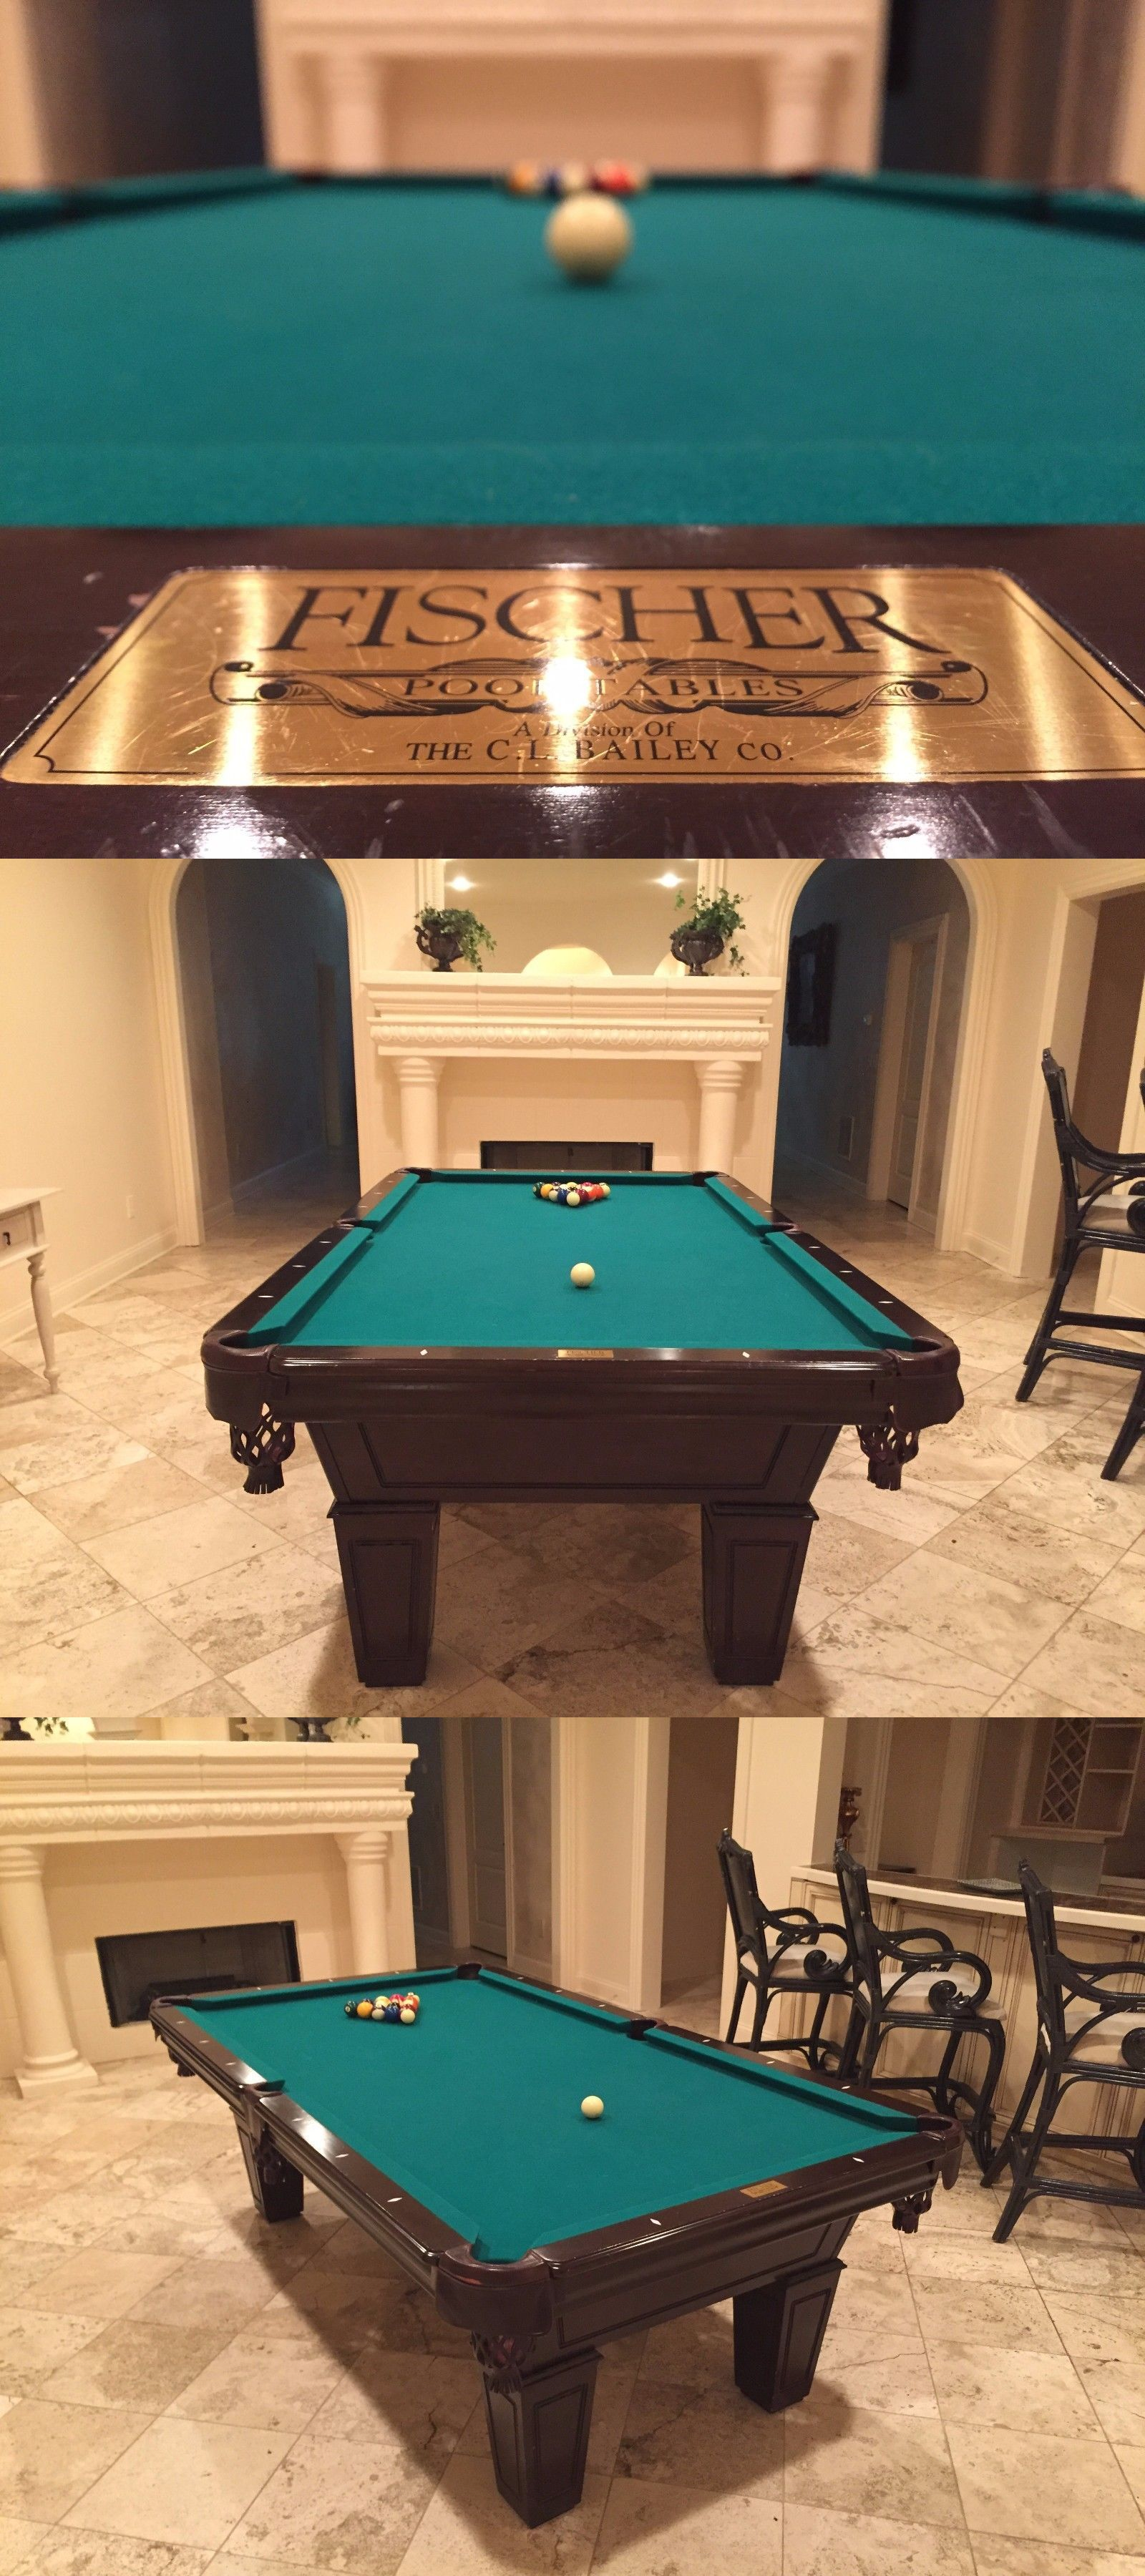 Pool table legs accessories for sale - Tables 21213 8 Ft Pool Table Billiard Accessories Balls Two Cue Sticks Triangle Rack Game